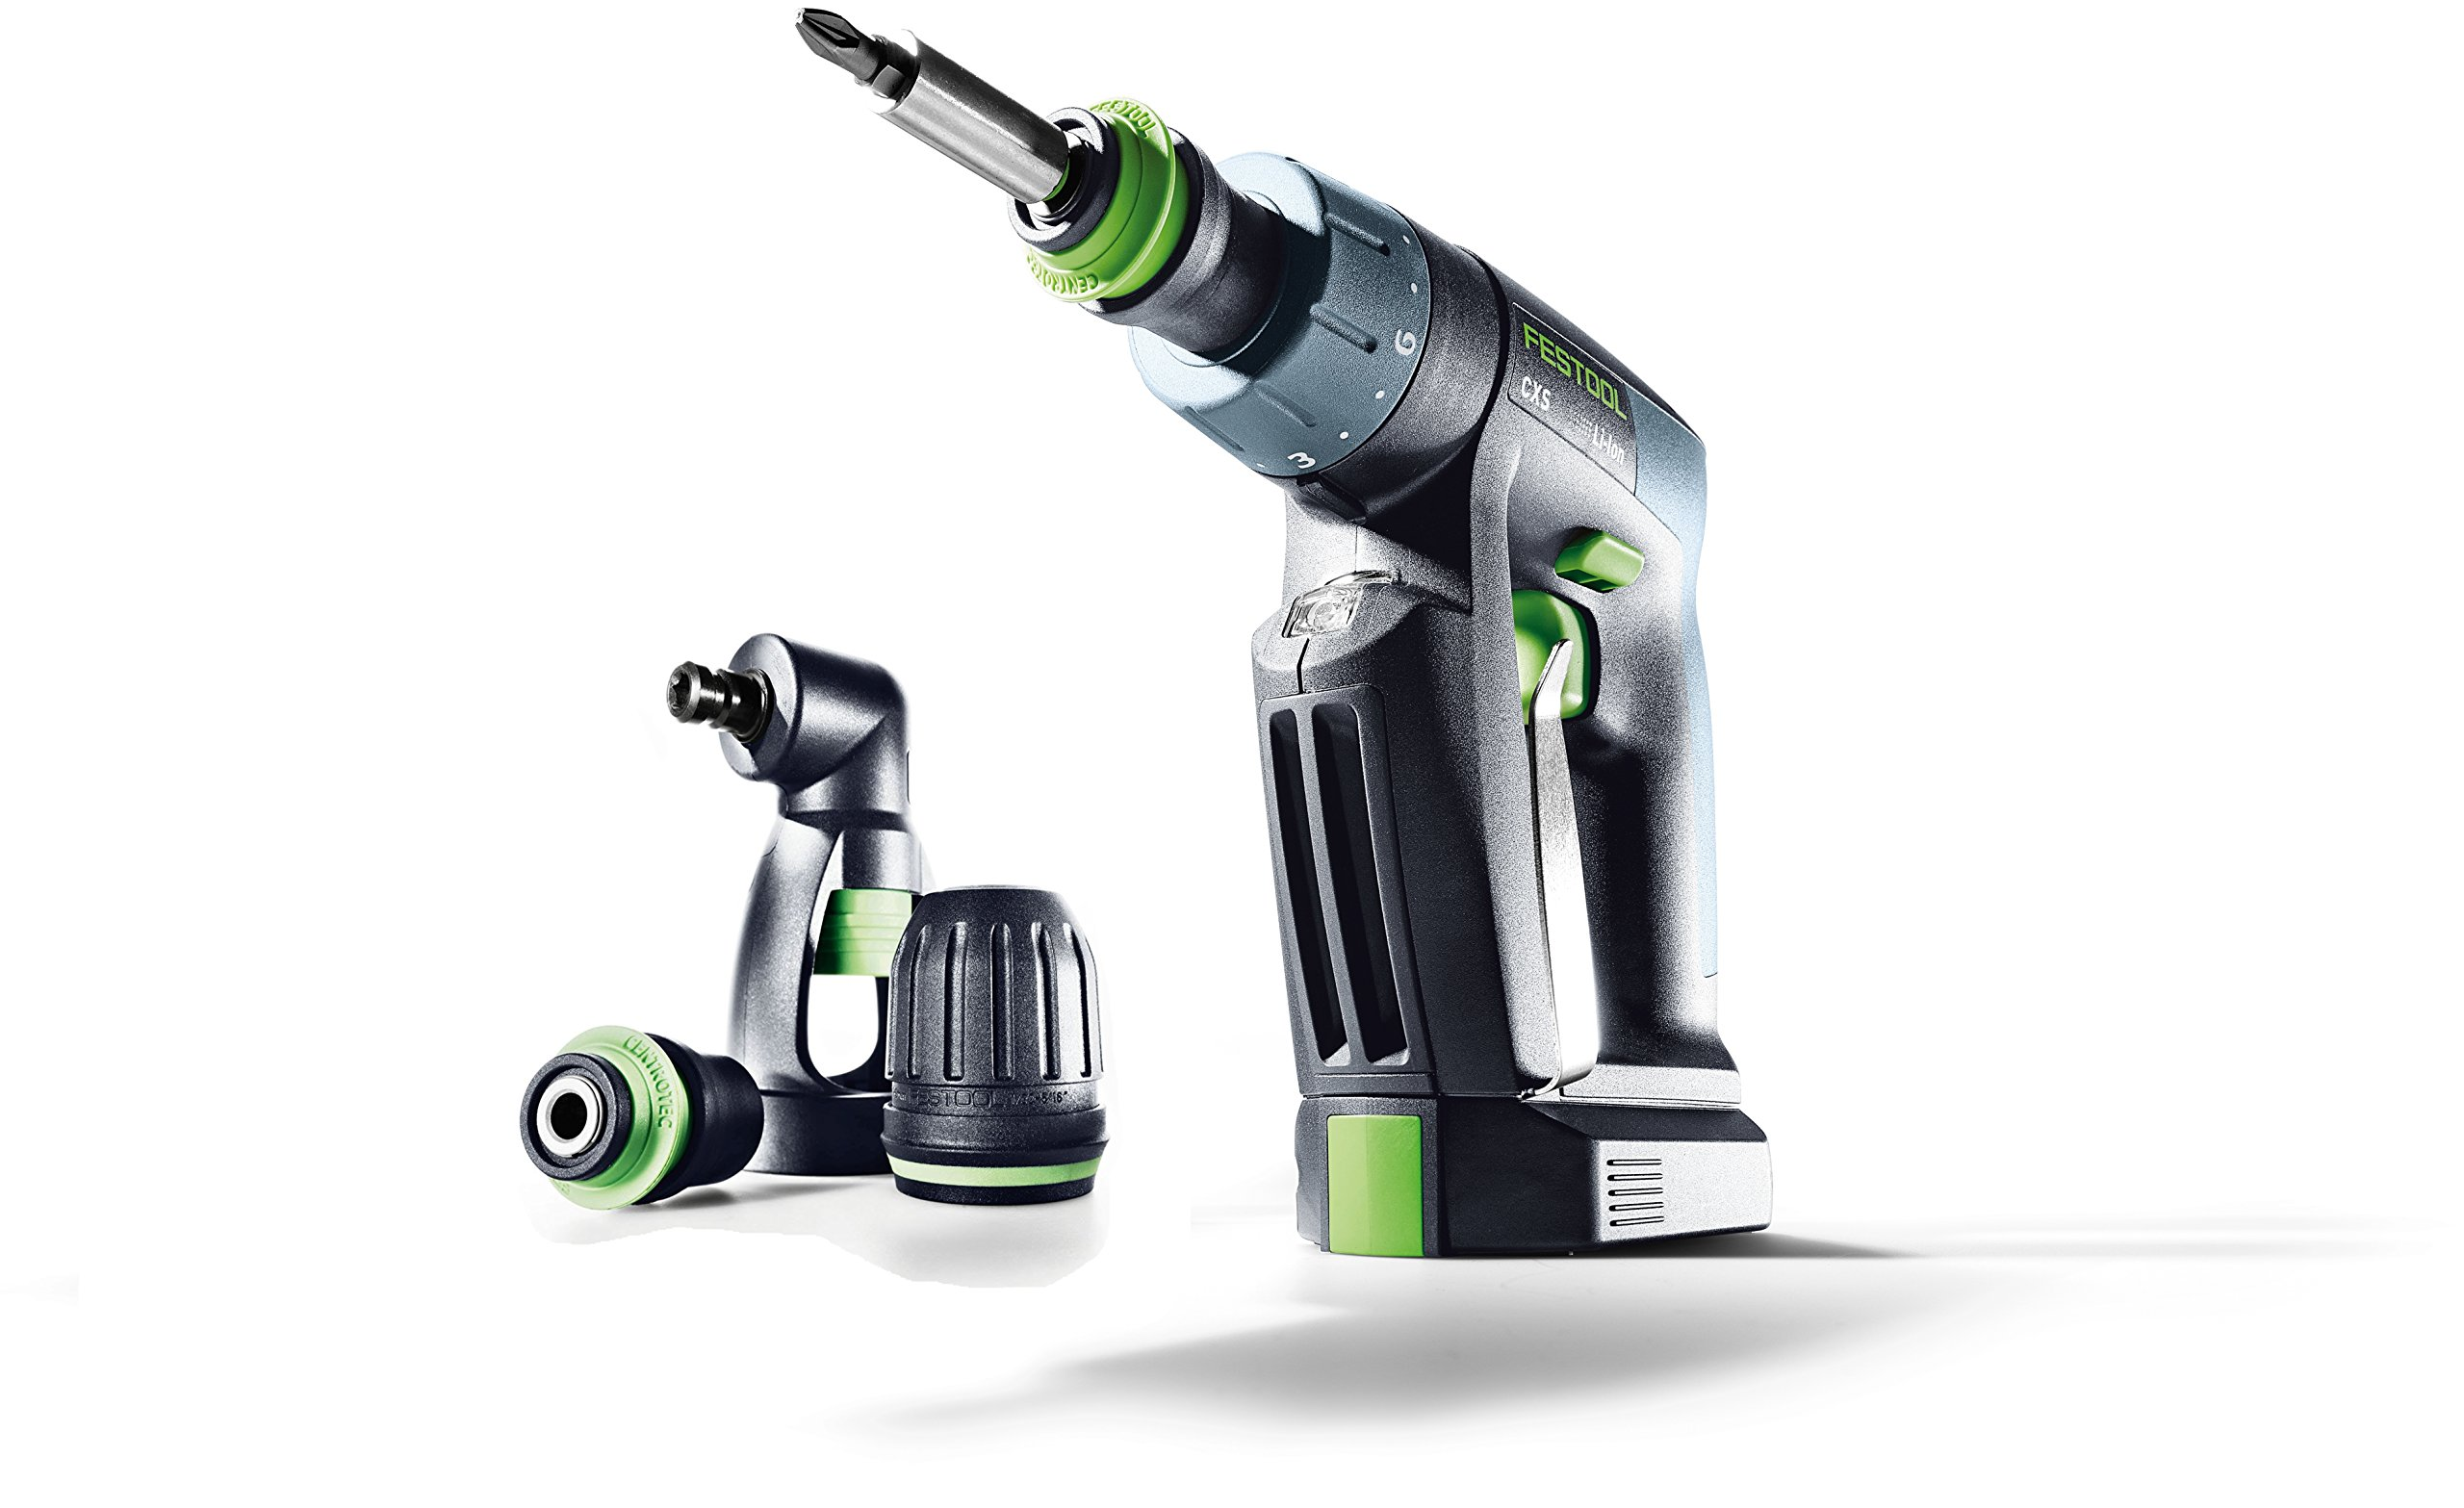 Festool 564535 CXS Compact Drill Set by Festool